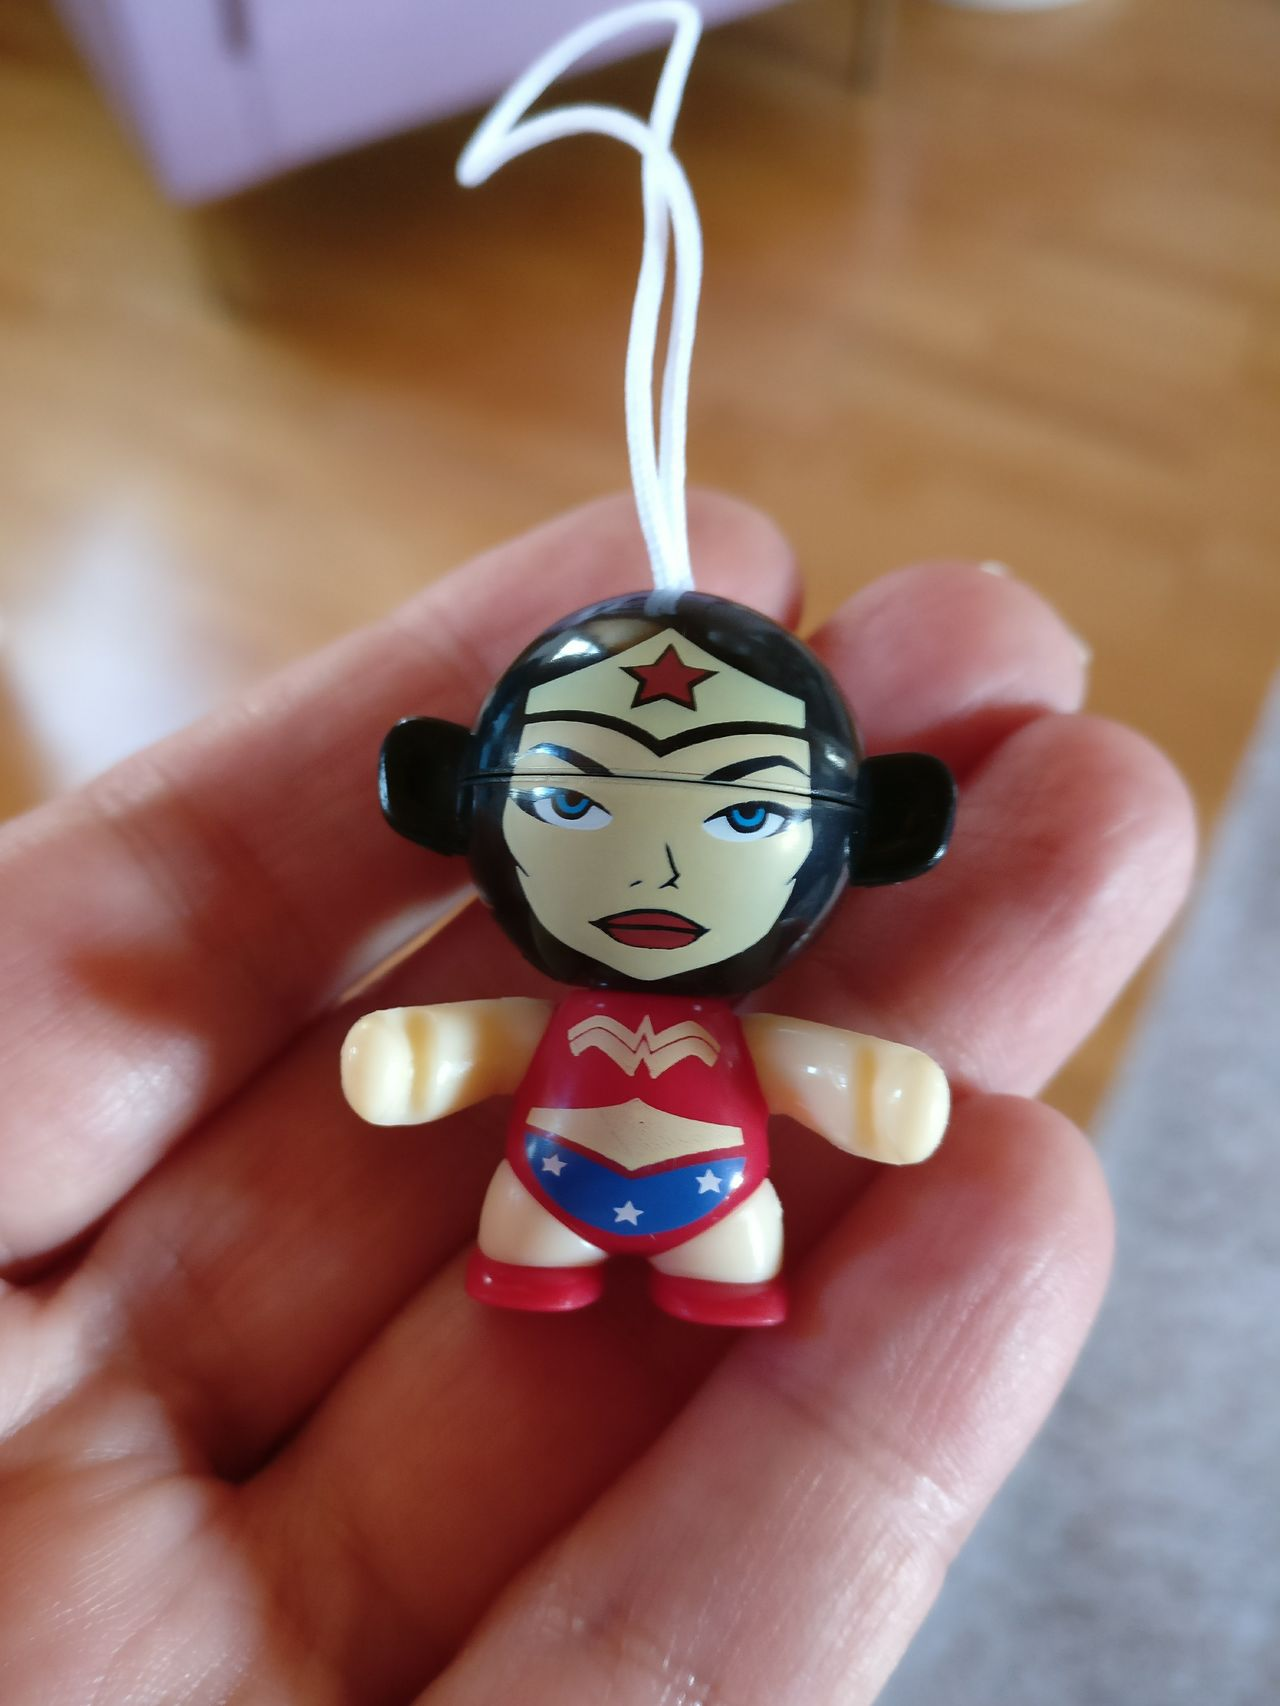 Human Hand Holding Focus On Foreground Only Women Wonderwoman Wonderwomen Toy Marvellegends Marvel Legends Marvel Woman Power Girls Power Kinder Surprise Mascot Heroine Heroes People Wonder Woman Resist EyeEm Diversity